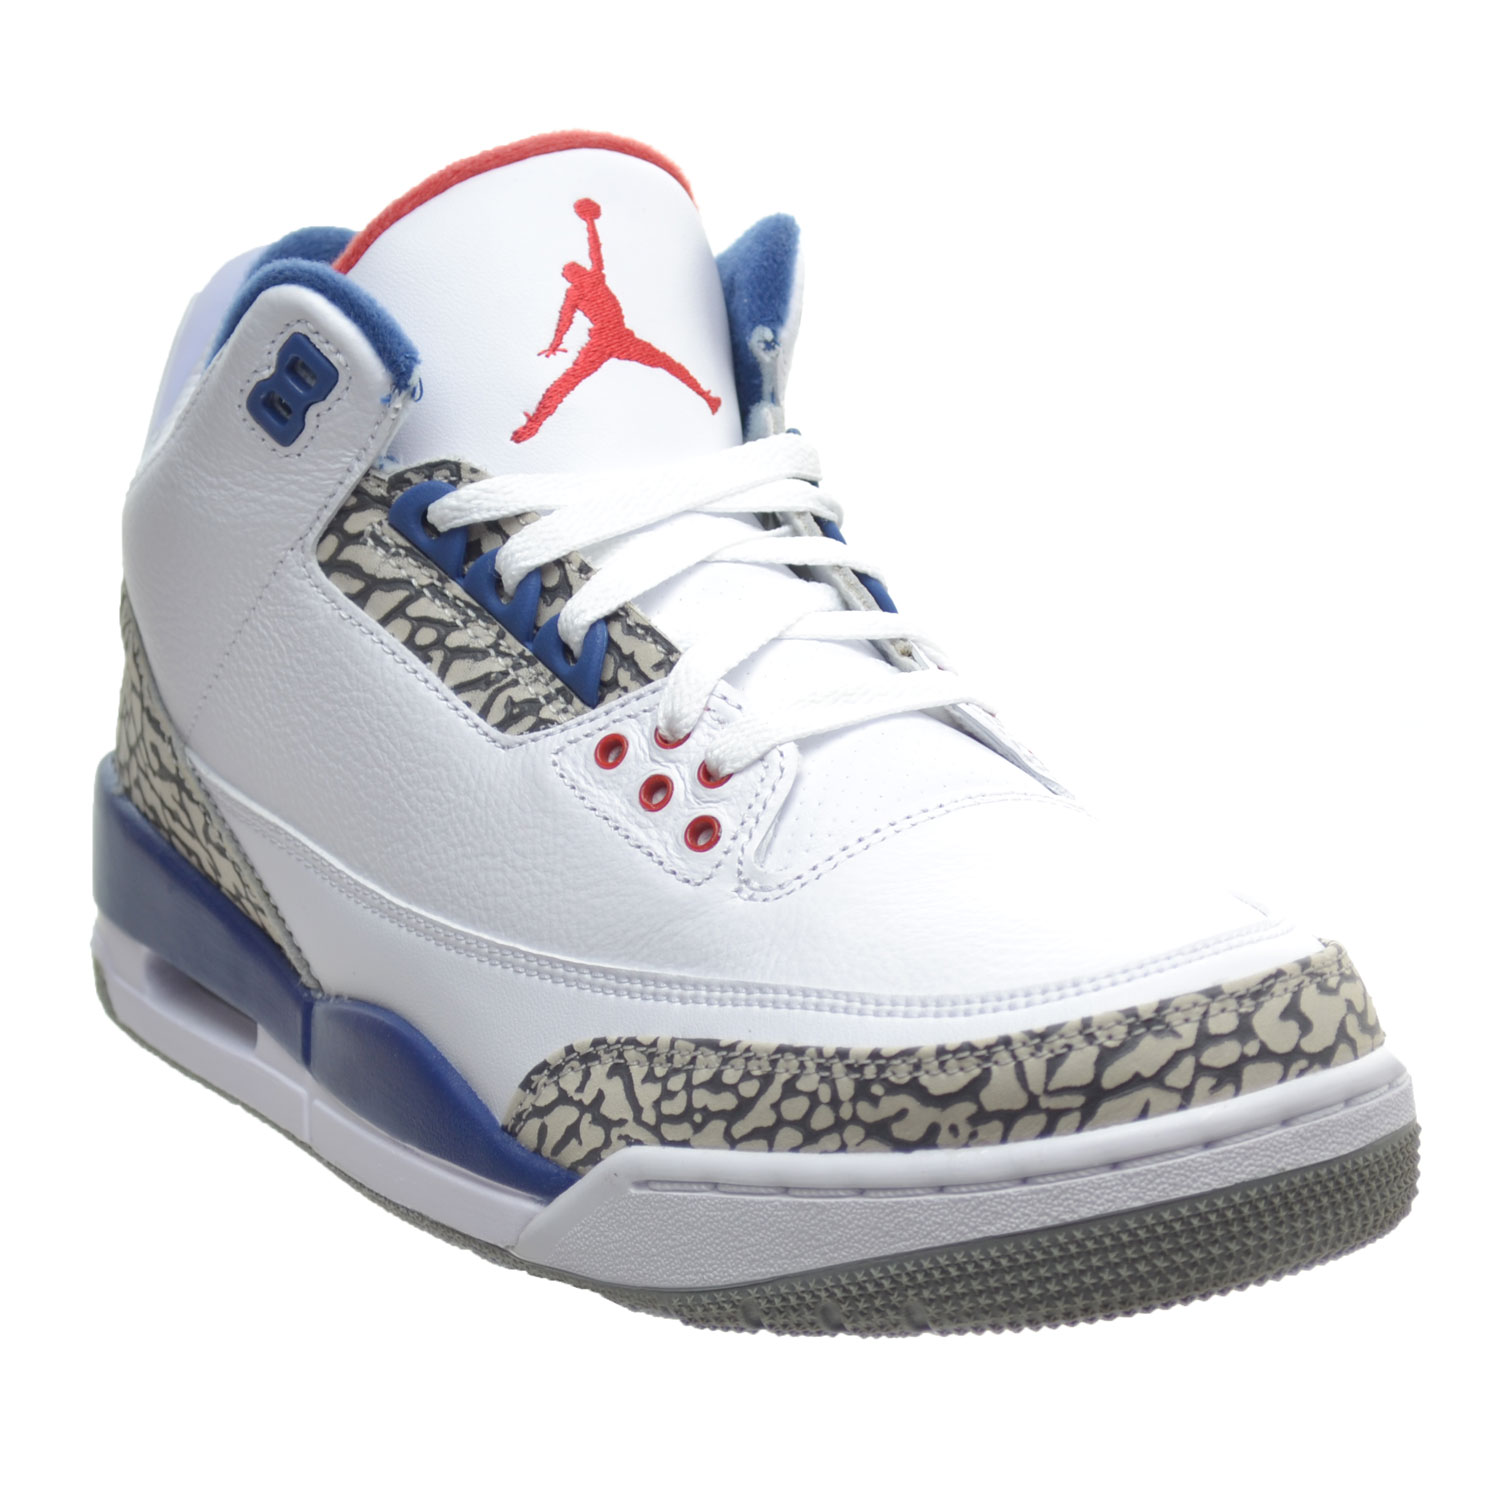 508f4886819481 Jordan - Air Jordan 3 Retro OG Men s Shoes White Fire Red True Blue  854262-106 - Walmart.com